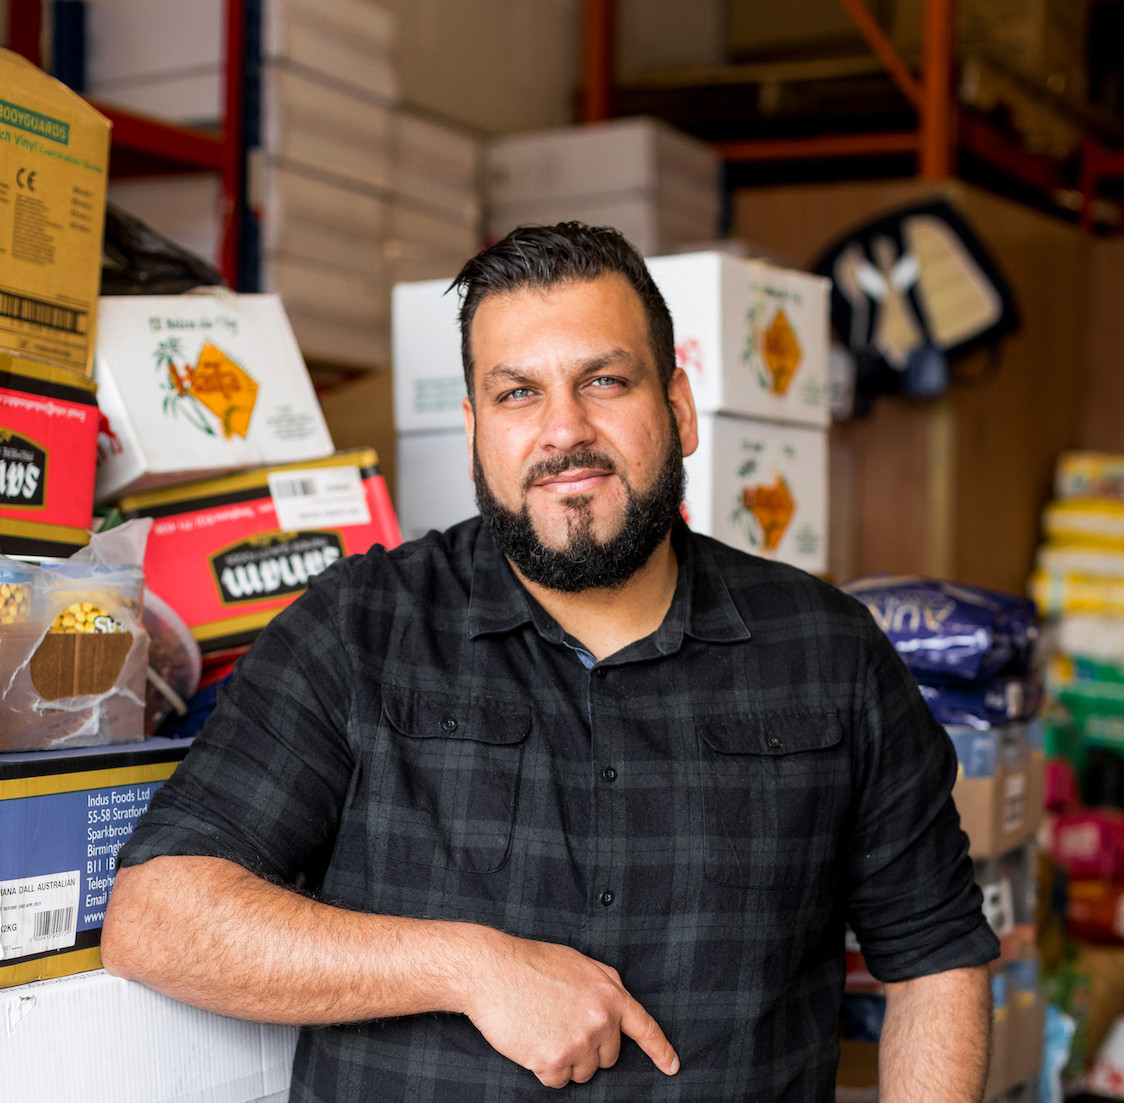 The Muslim community group in Birmingham that helps neighbours, 'human to human'